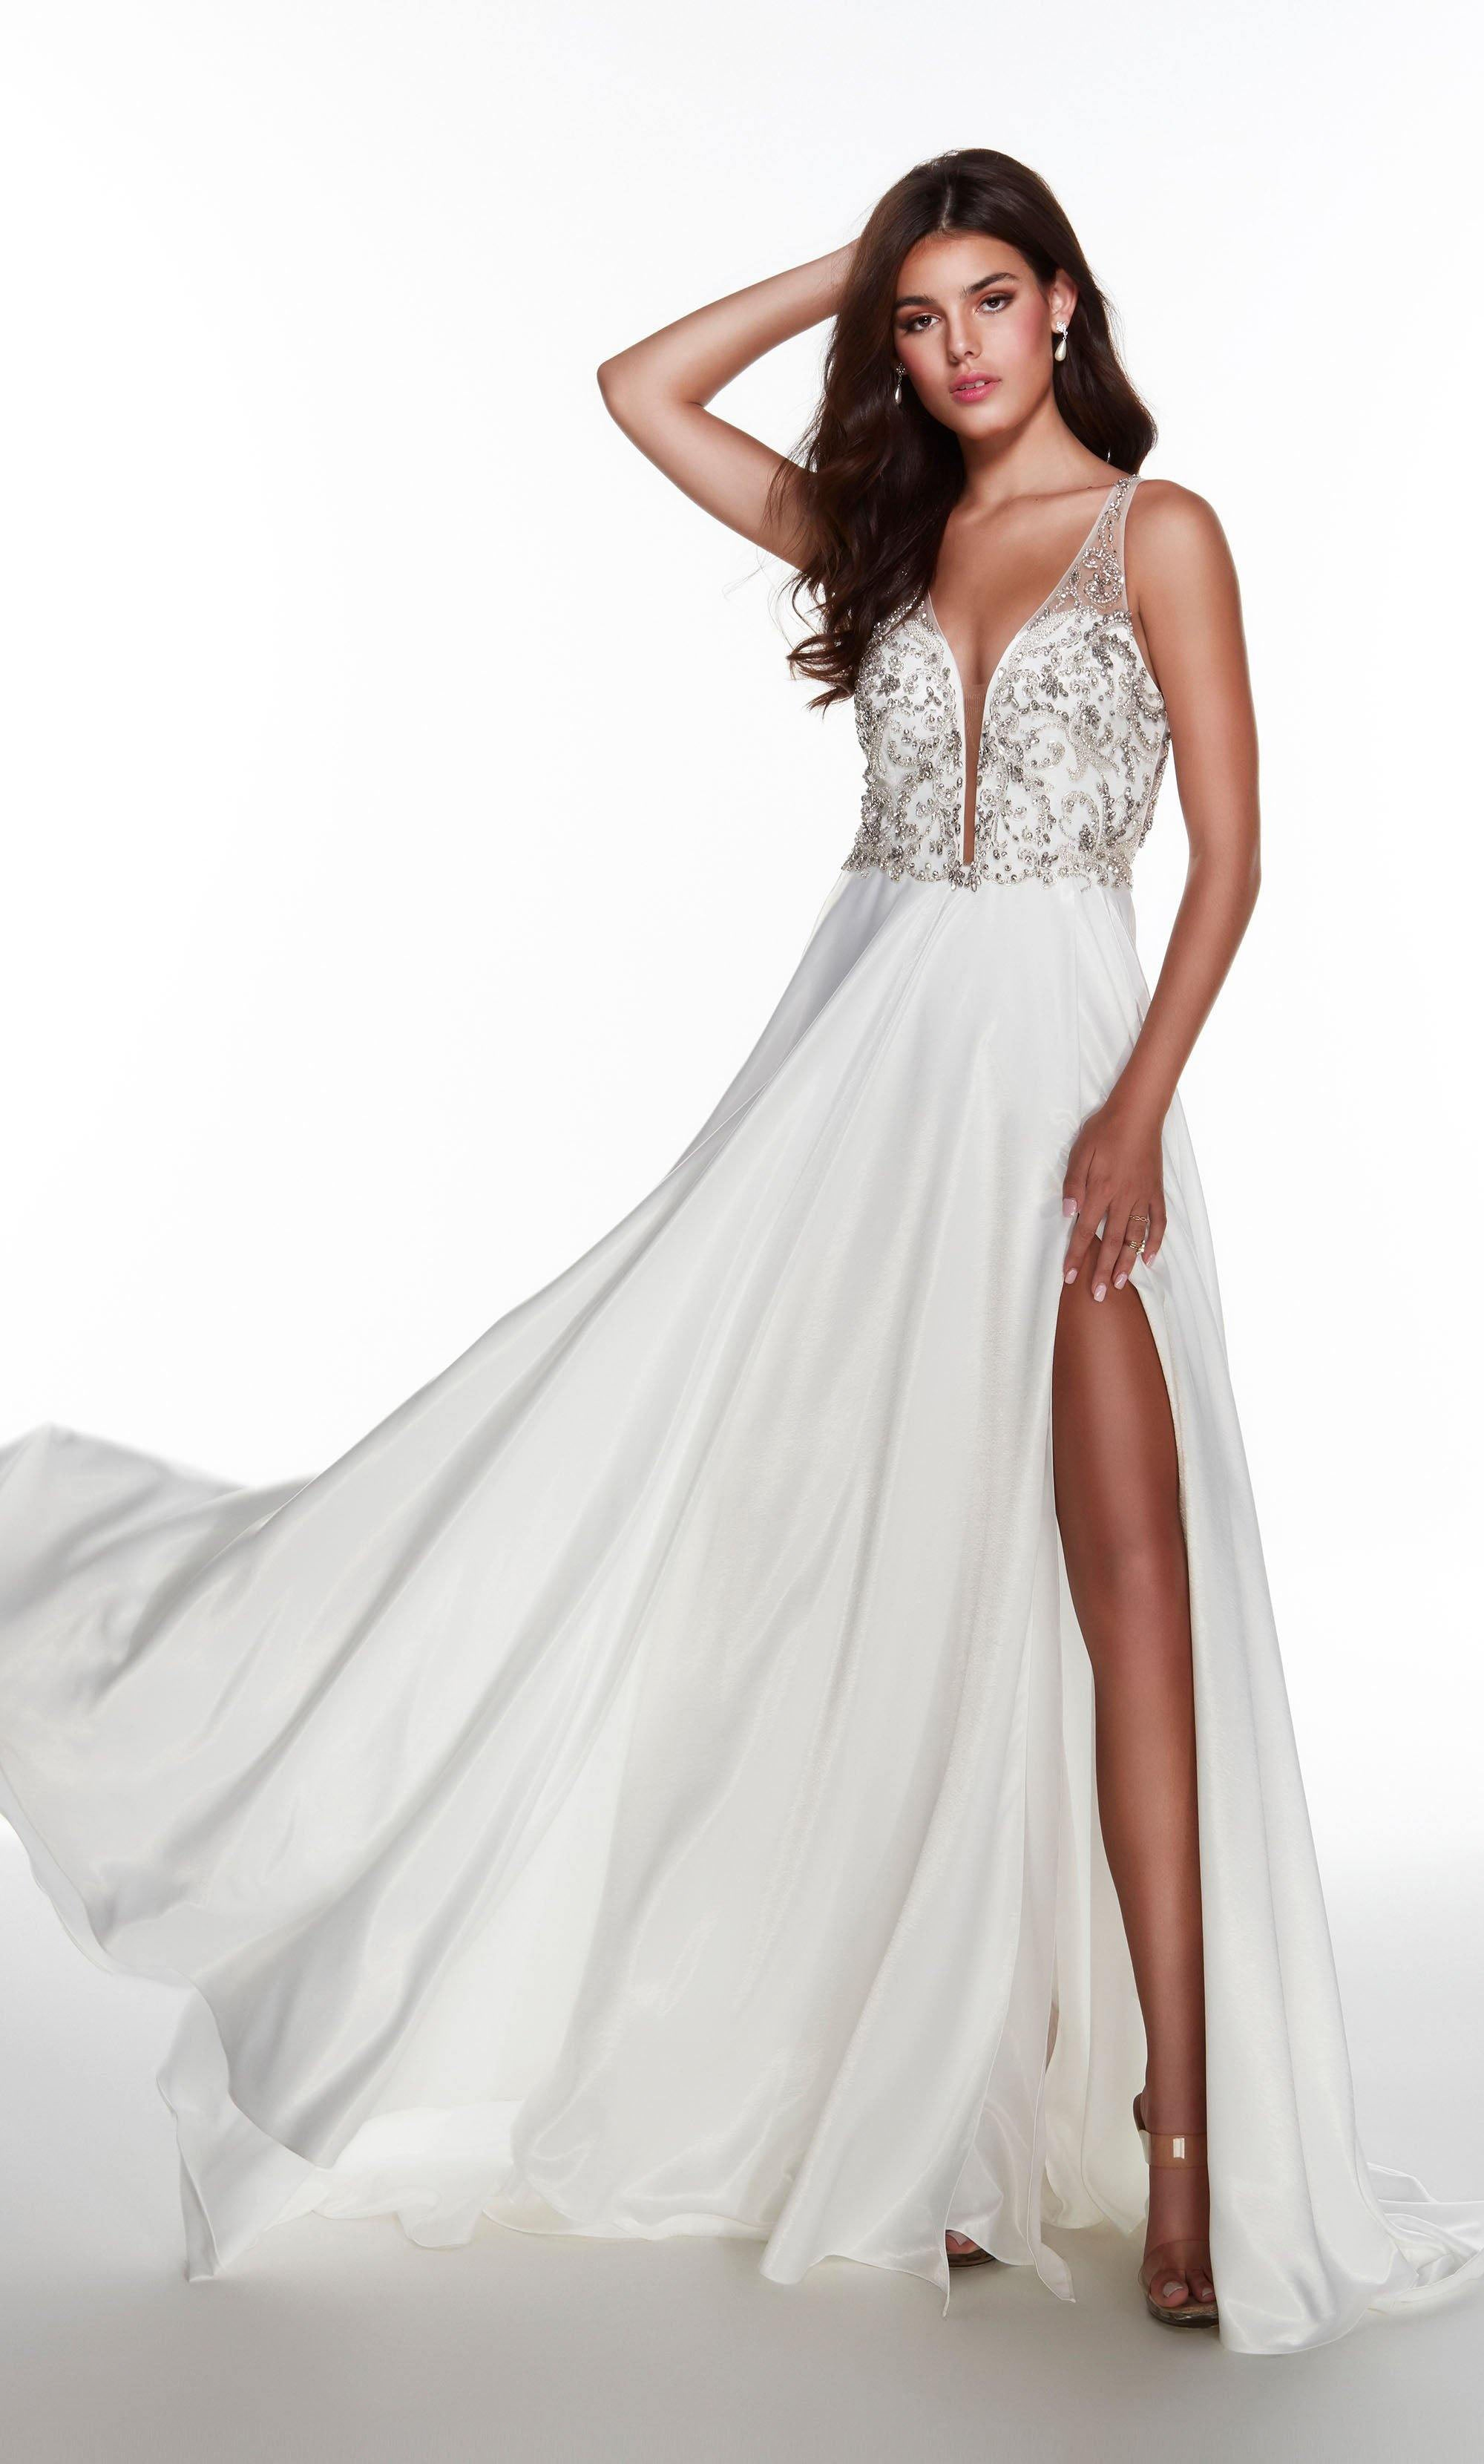 Diamond White flowy informal bridal dress with a plunging neckline, jewel embellished bodice, and front slit